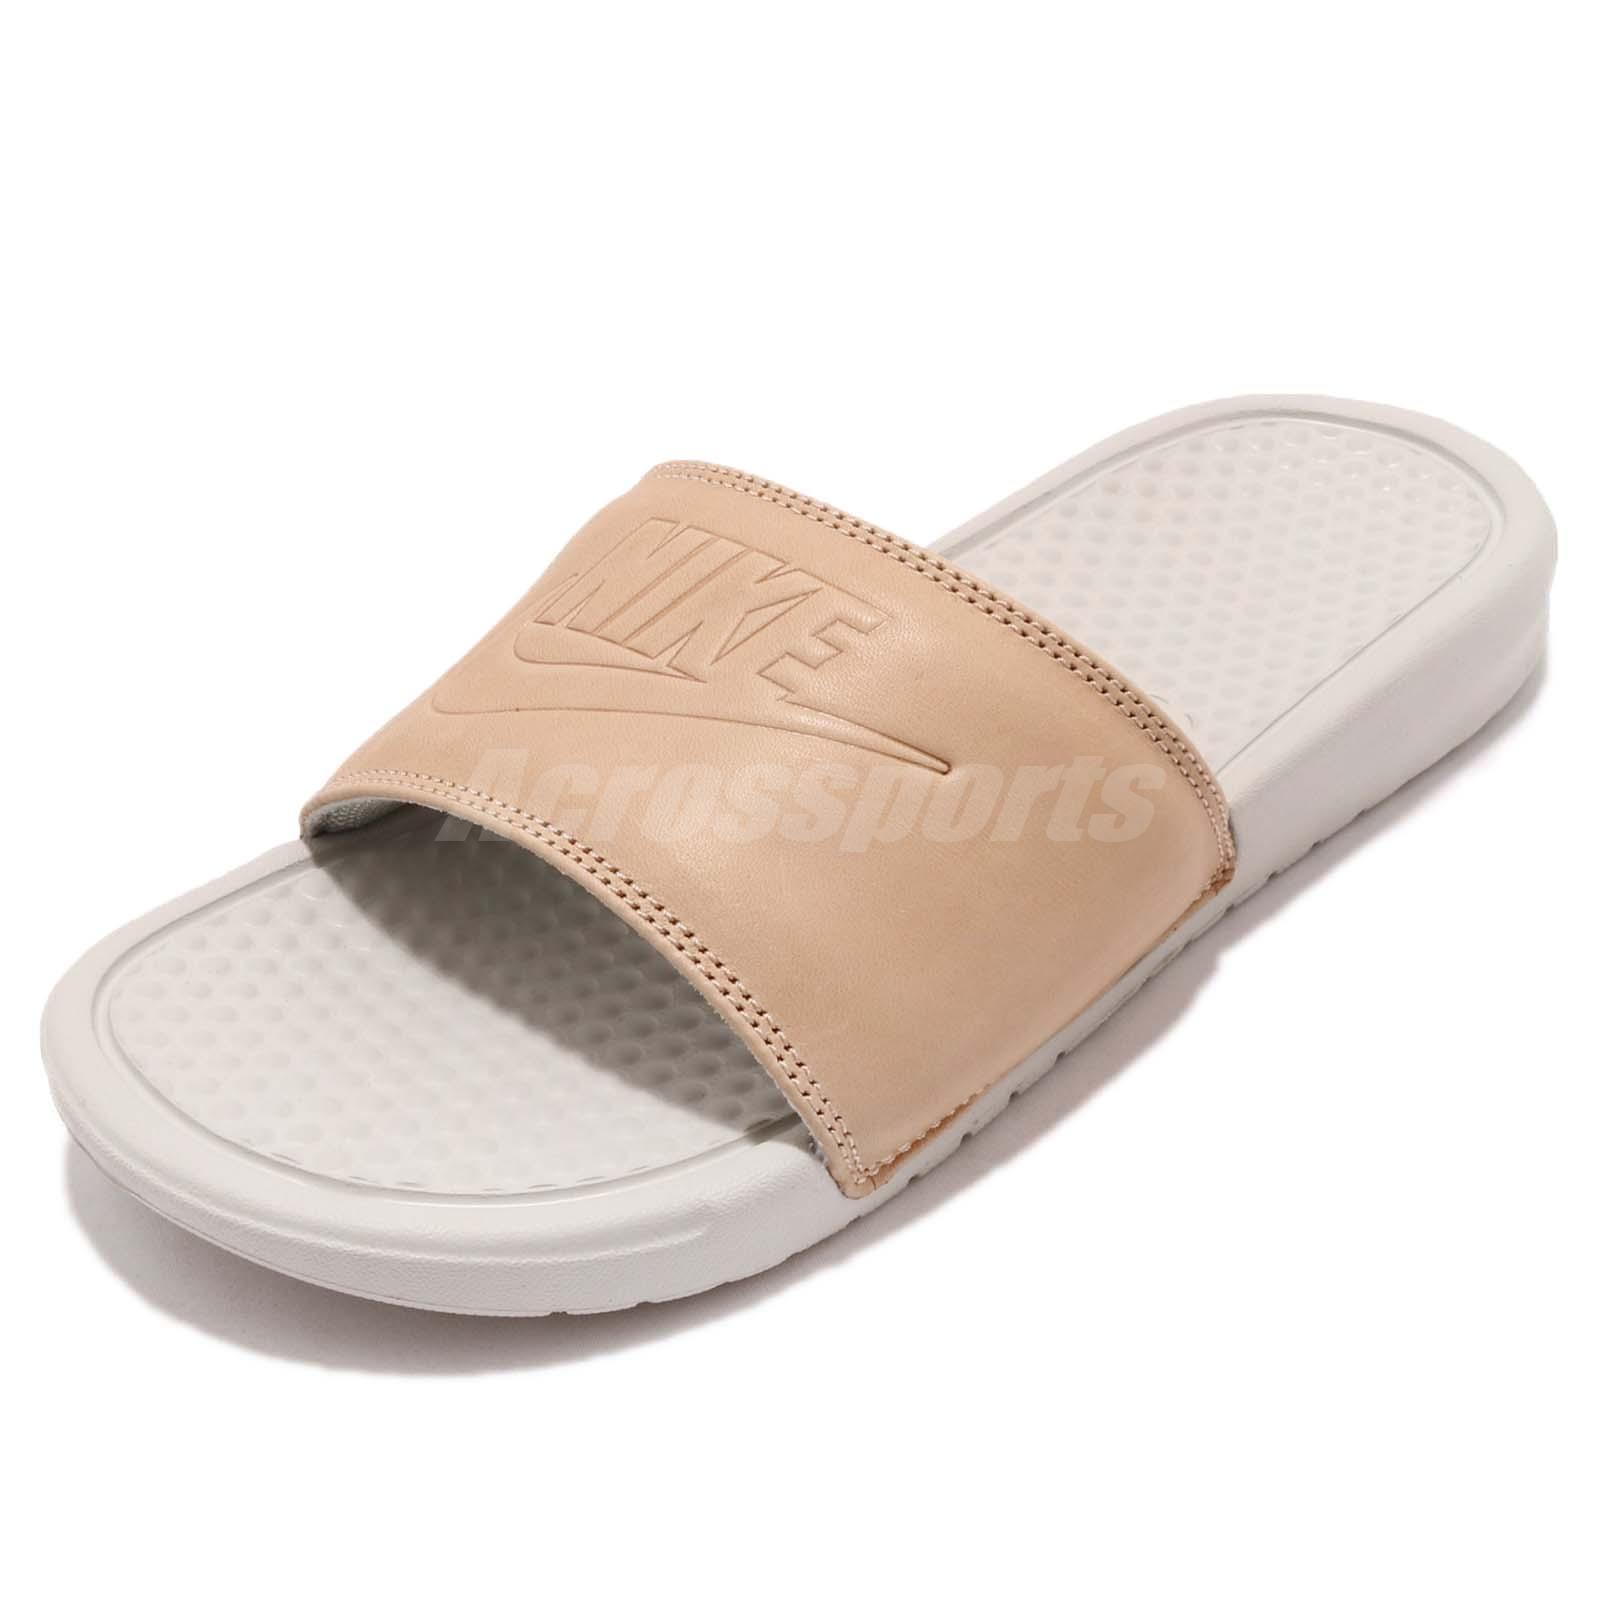 57856b87e Details about Nike Wmns Benassi JDI BP Vachetta Tan Brown Women Sports  Sandal Slide AO4642-200